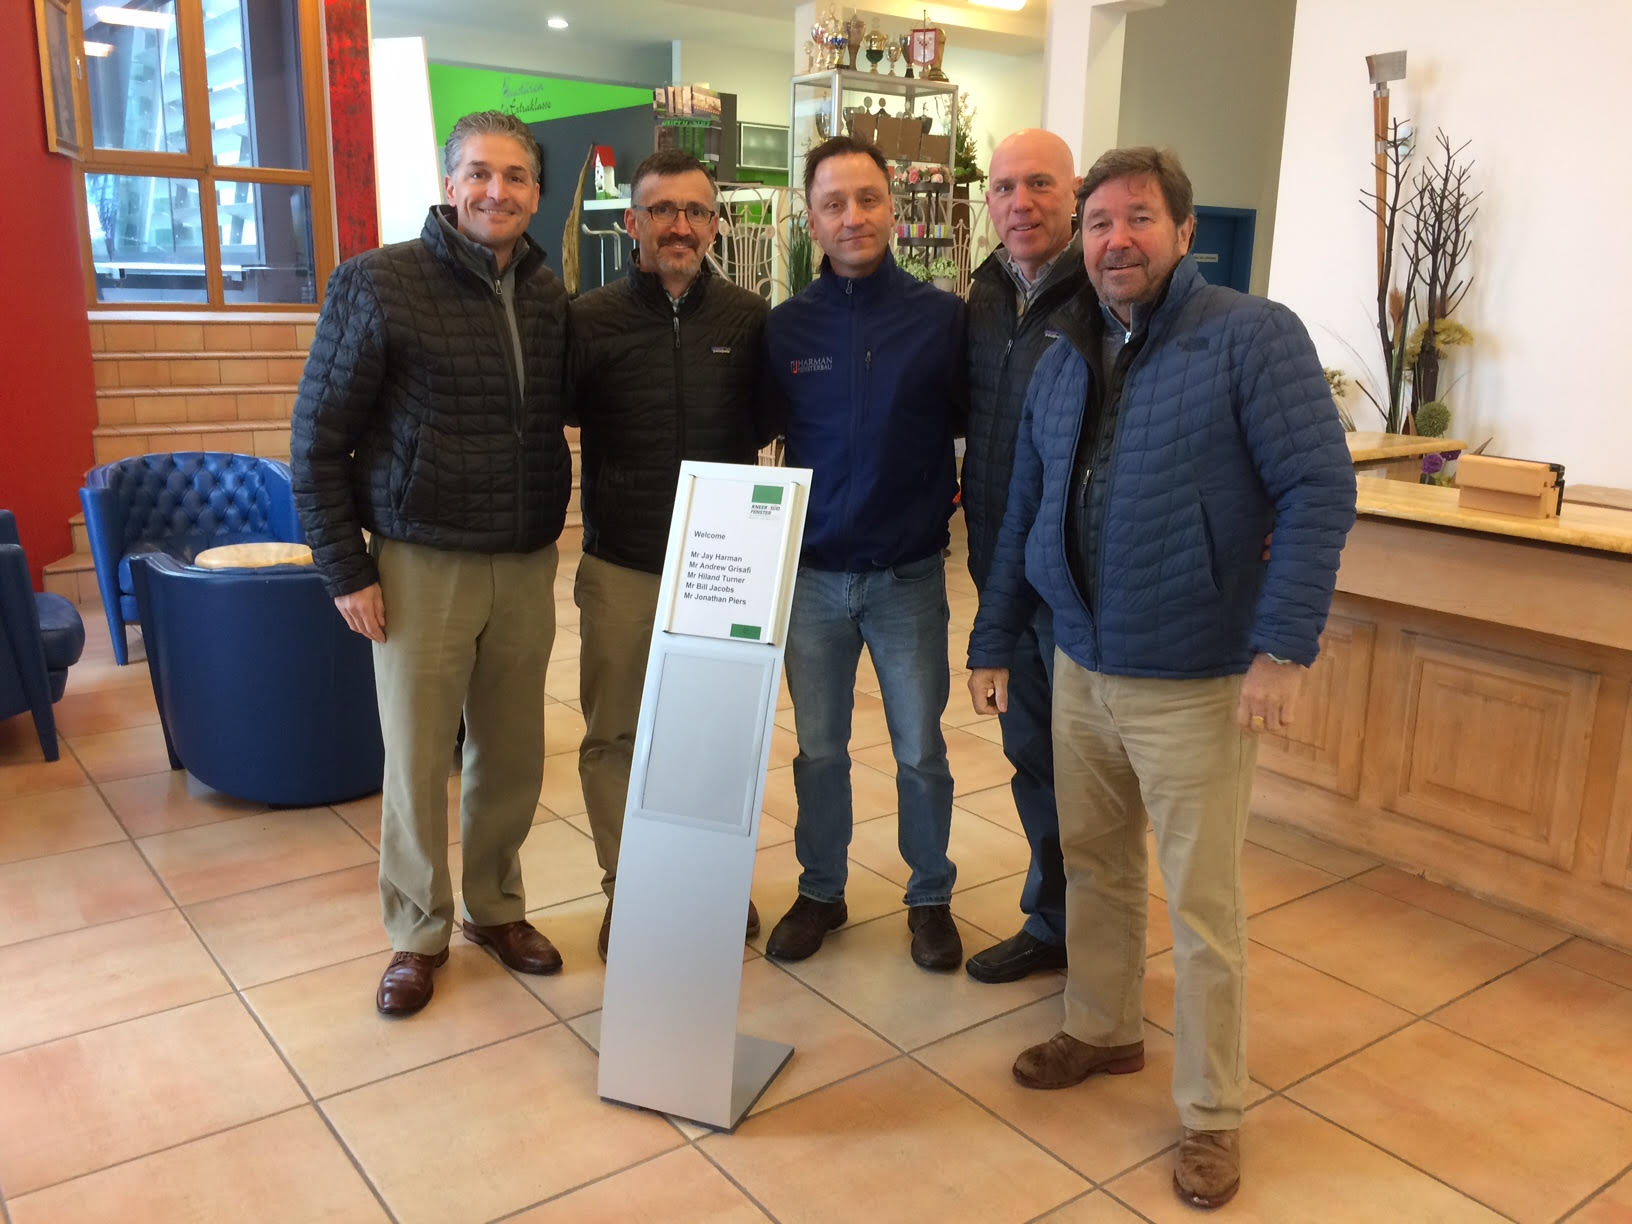 Andrew Grisafi of ARG & Co, Bill Jacobs of Historical Windows, Jonathan Piers of Specialty Builders Supply, Jay Harman of Harman Fensterbau, and Hiland Hill Turner Architect.